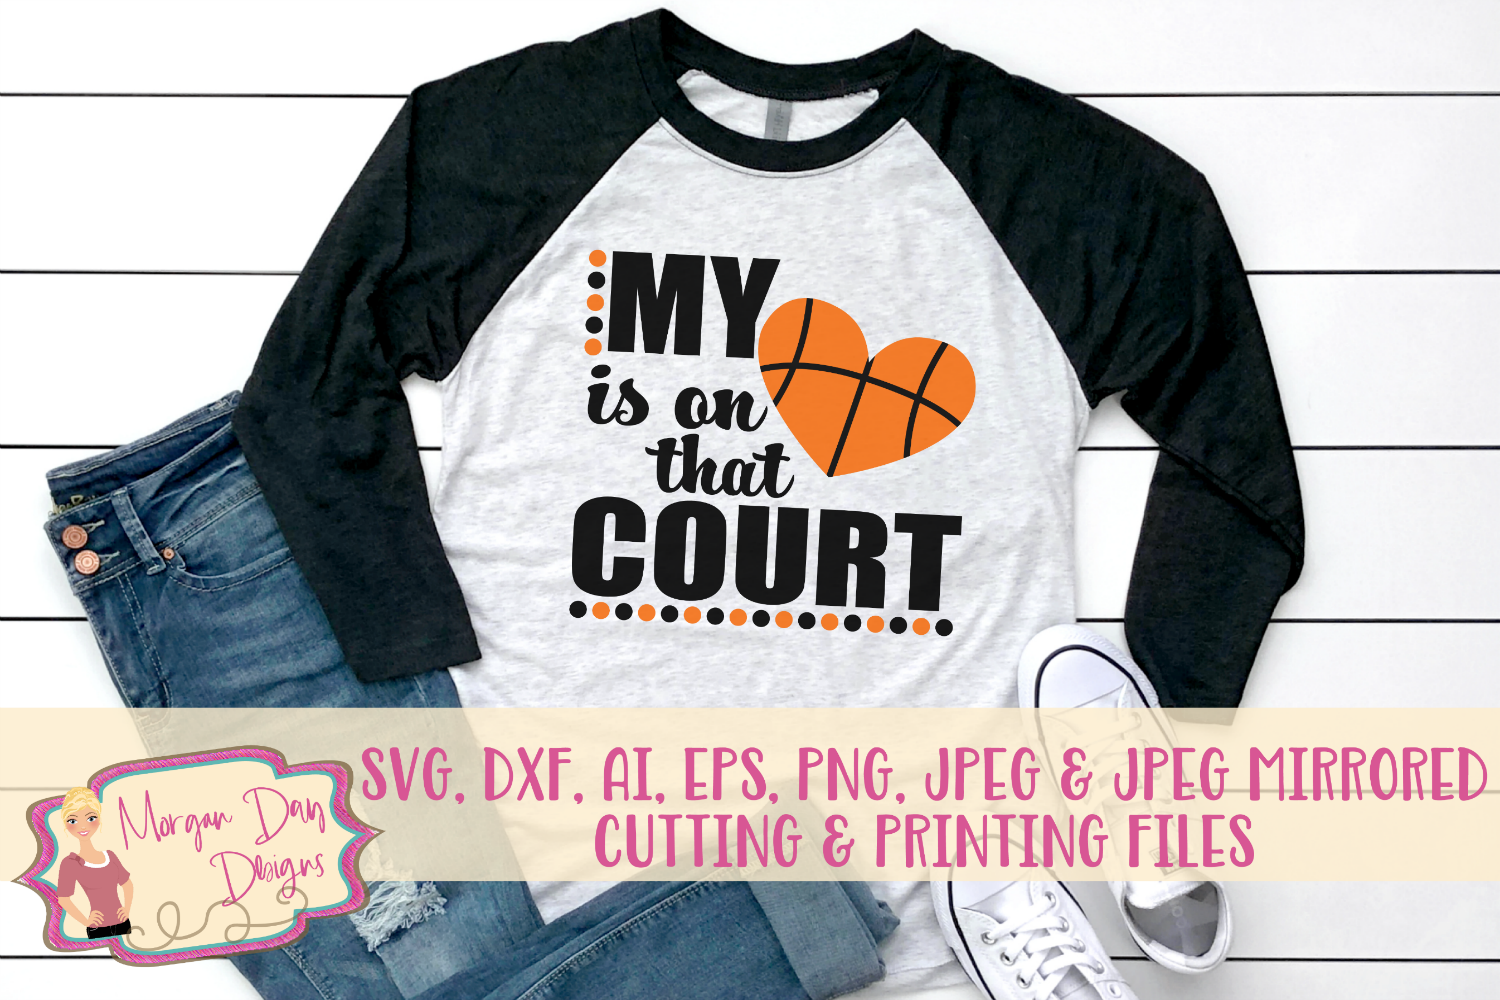 My Heart Is On That Court SVG, DXF, AI, EPS, PNG, JPEG example image 1